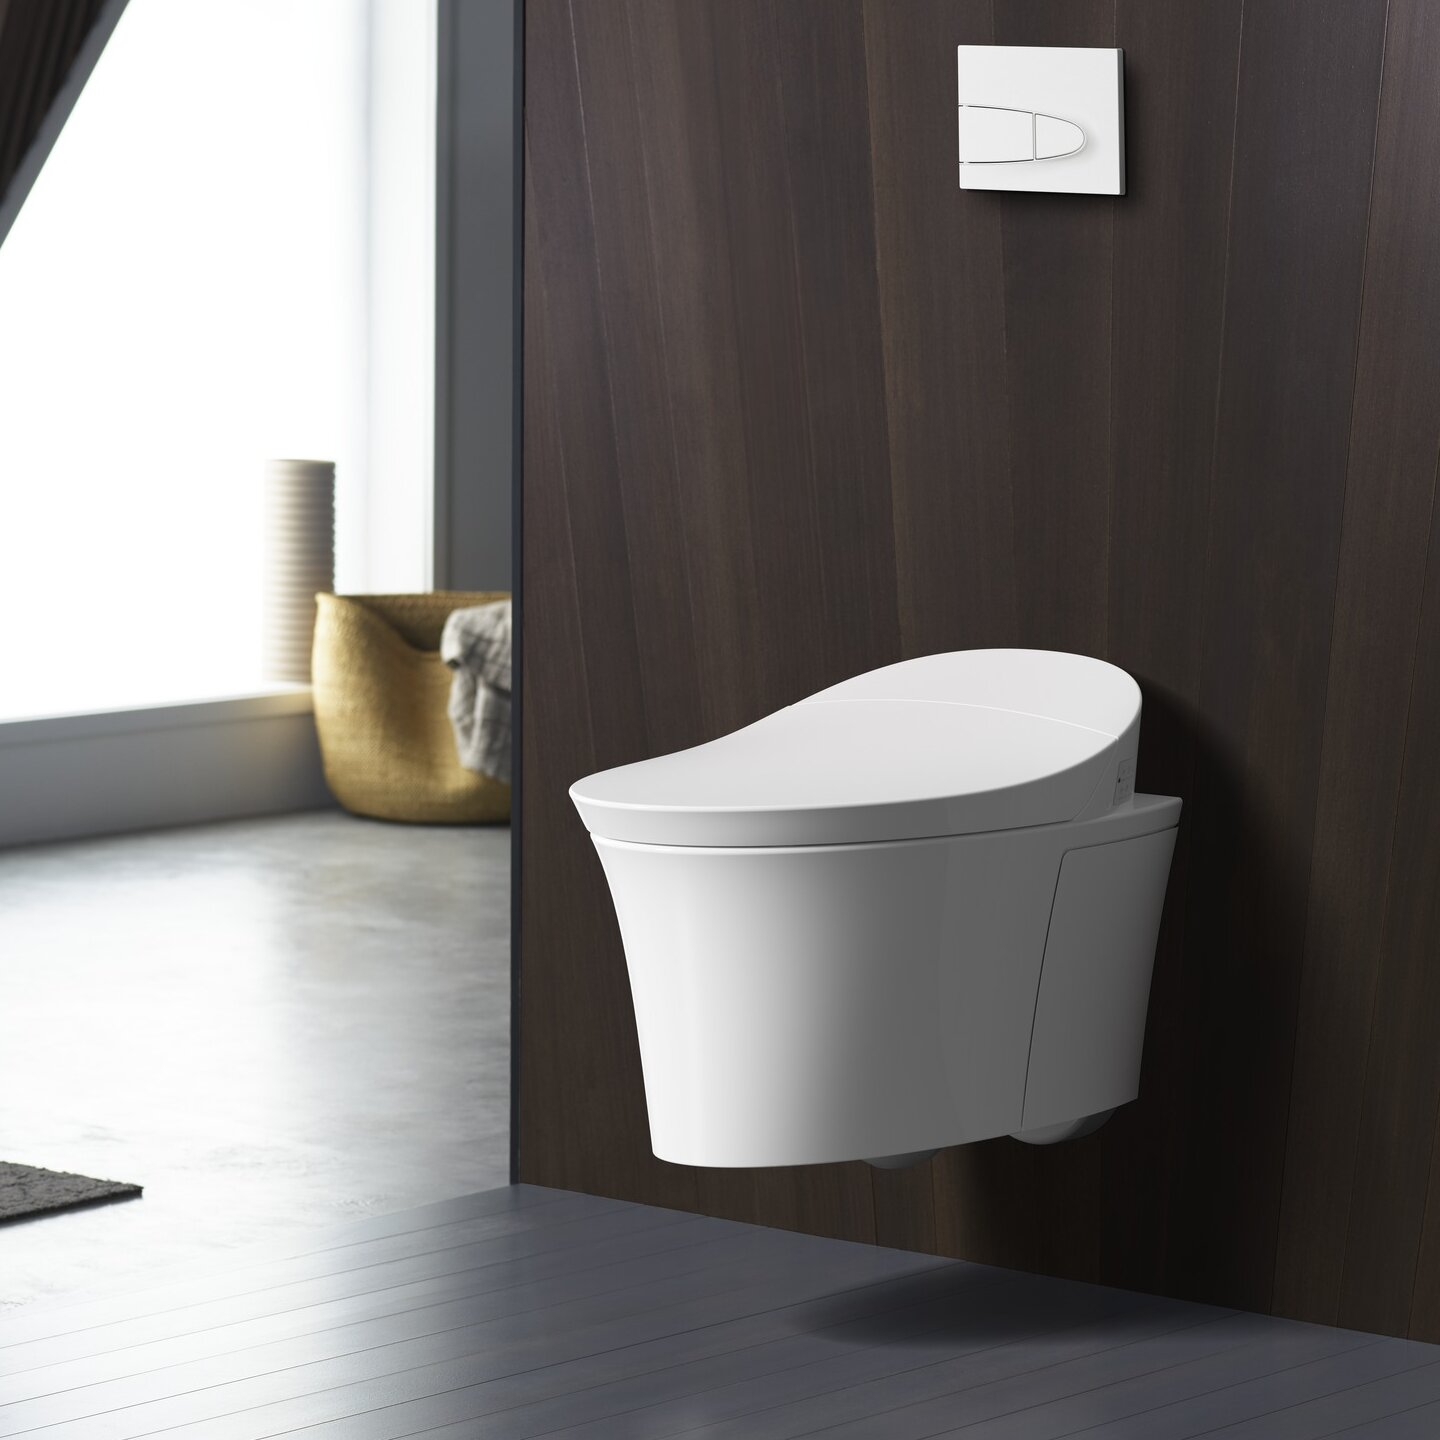 K 5402 0 Veil Intelligent Wall Hung Toilet With Touchless Flush